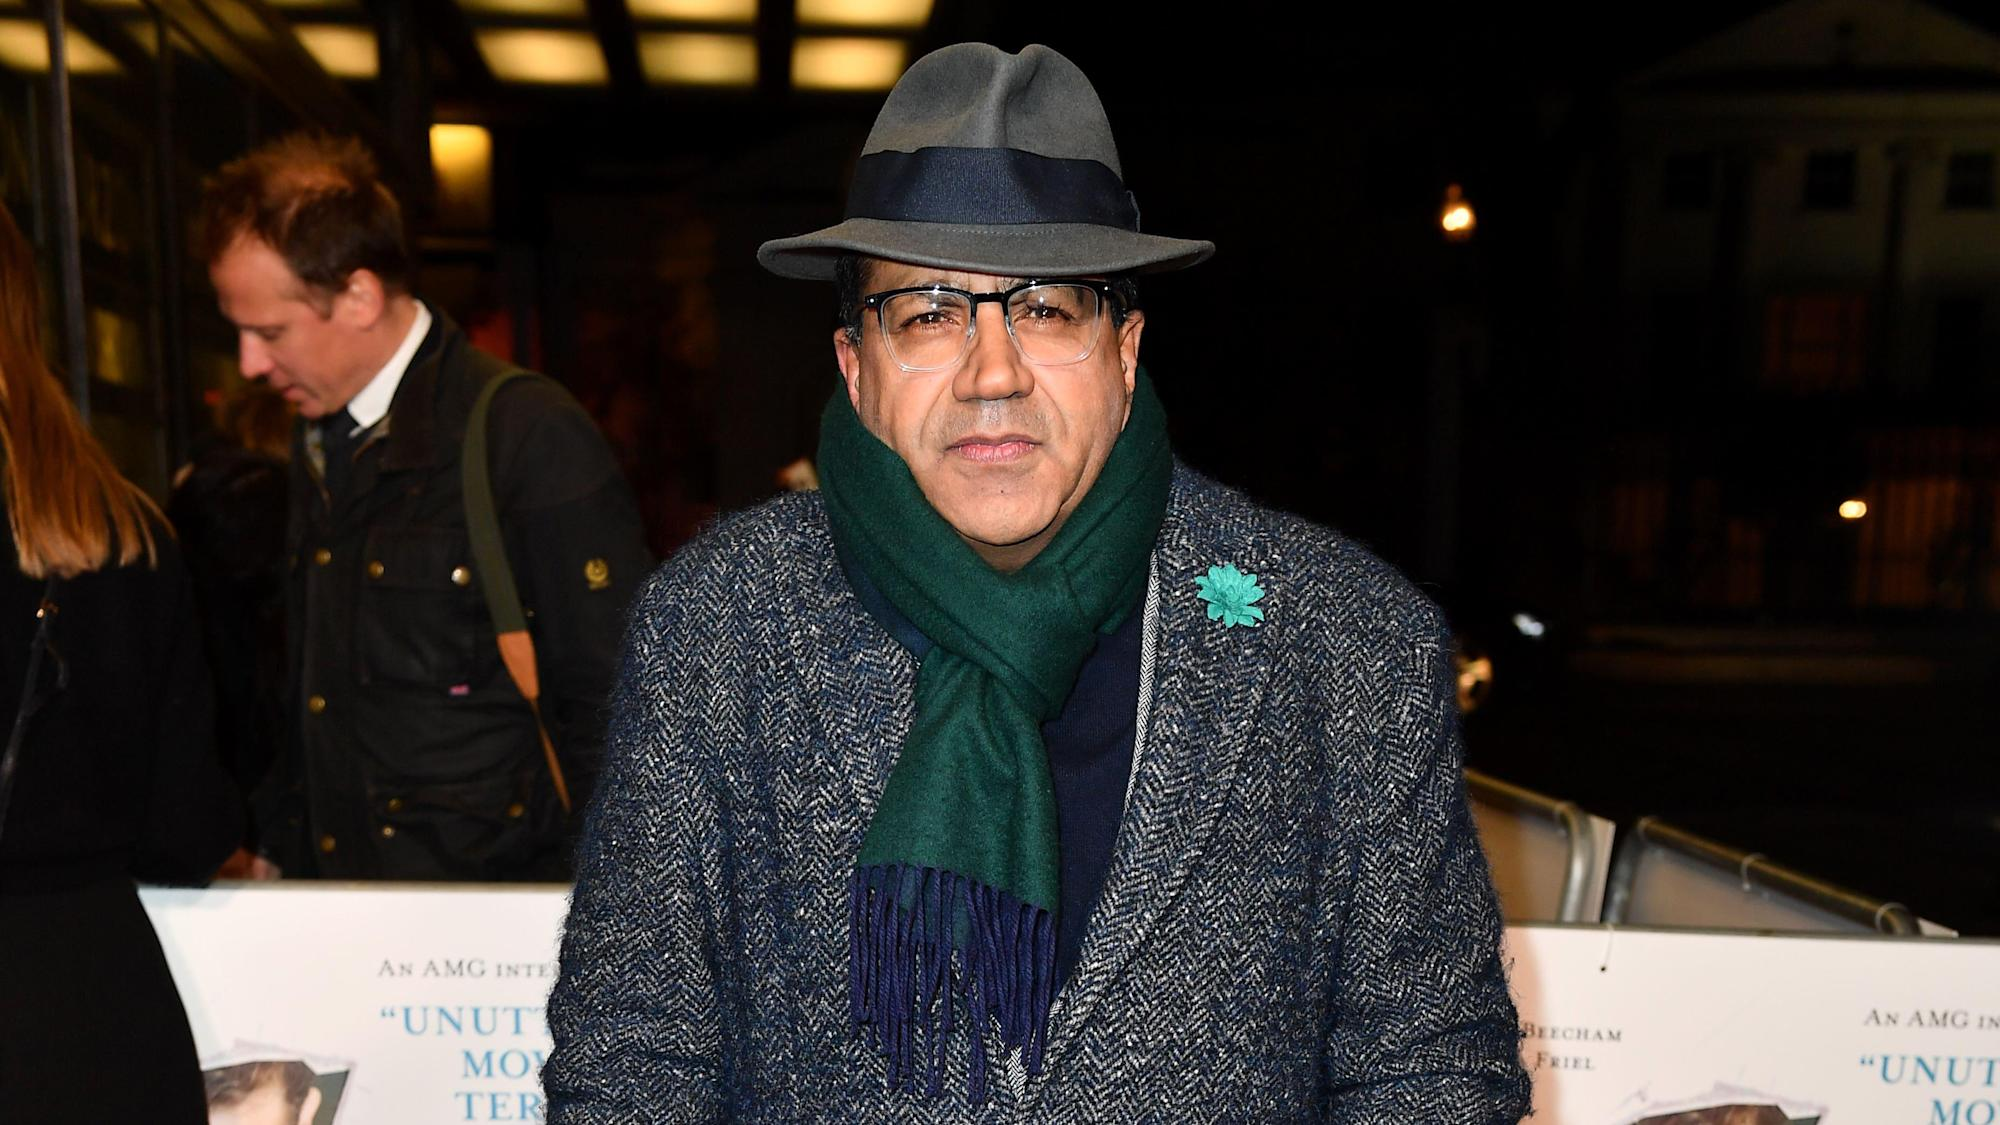 Martin Bashir's Diana interview scandal 'has eroded trust in the BBC'